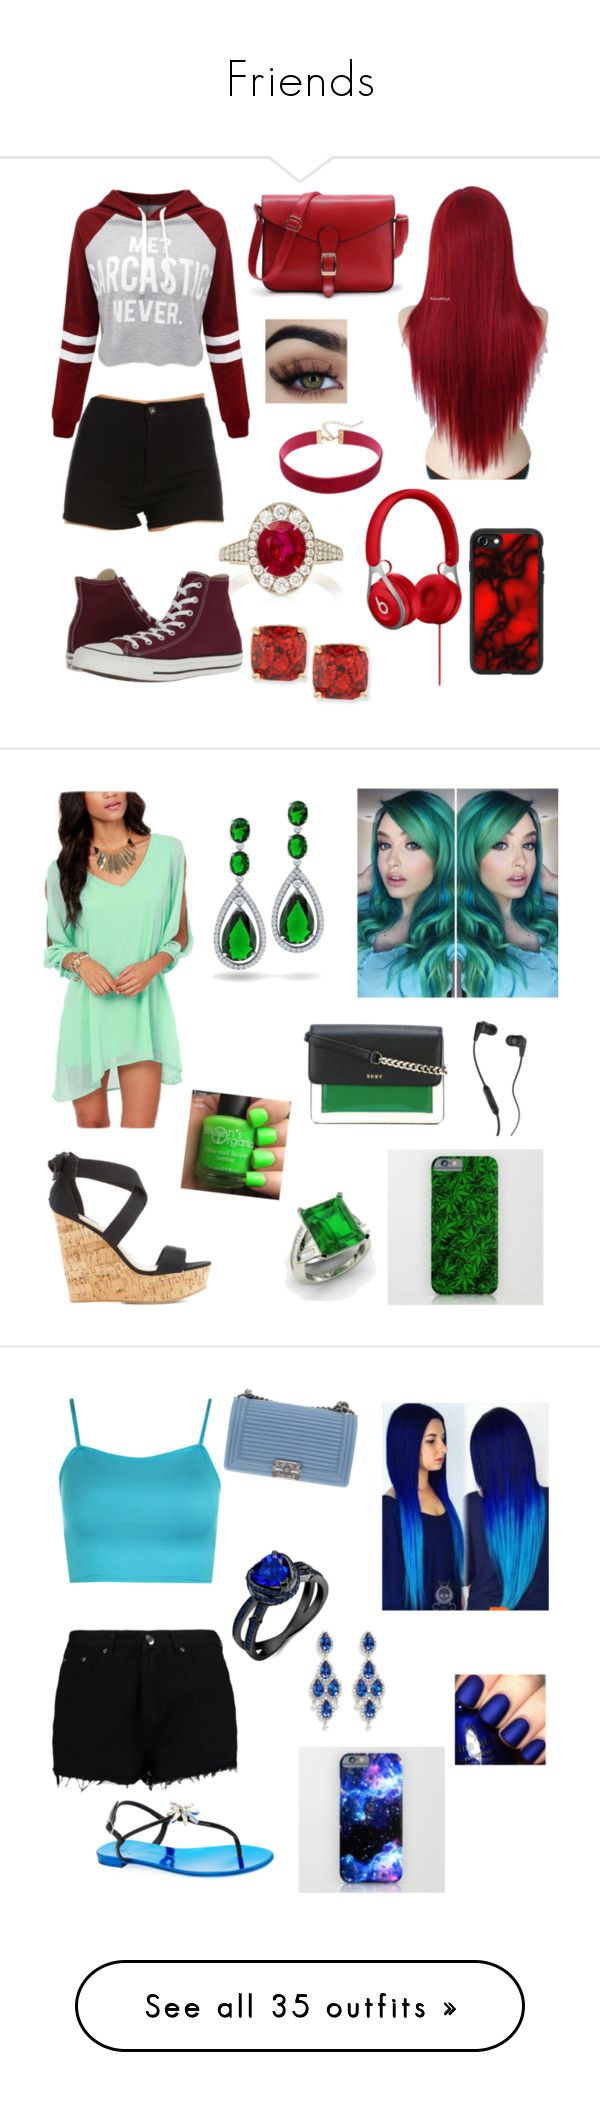 Friends by JJWolfQueen9596 on Polyvore featuring polyvore, fashion, style, Martin Katz, WithChic, Casetify, Kate Spade, Converse, clothing, Bamboo, Diamondere, Skullcandy, DKNY, Bling Jewelry, WearAll, Boohoo, Chanel, CZ by Kenneth Jay Lane, Giuseppe Zanotti, China Glaze, Bueno, Emilio!, Miss Selfridge, Happy Plugs, Jimmy Choo, Cara, Kendall + Kylie, Acorn, Les Copains, Grayson Threads, Ice, plus size clothing, P.J. Salvage, JunaRose, George, Justin Bieber, J. Adams, Jessica Simpson, Tales…